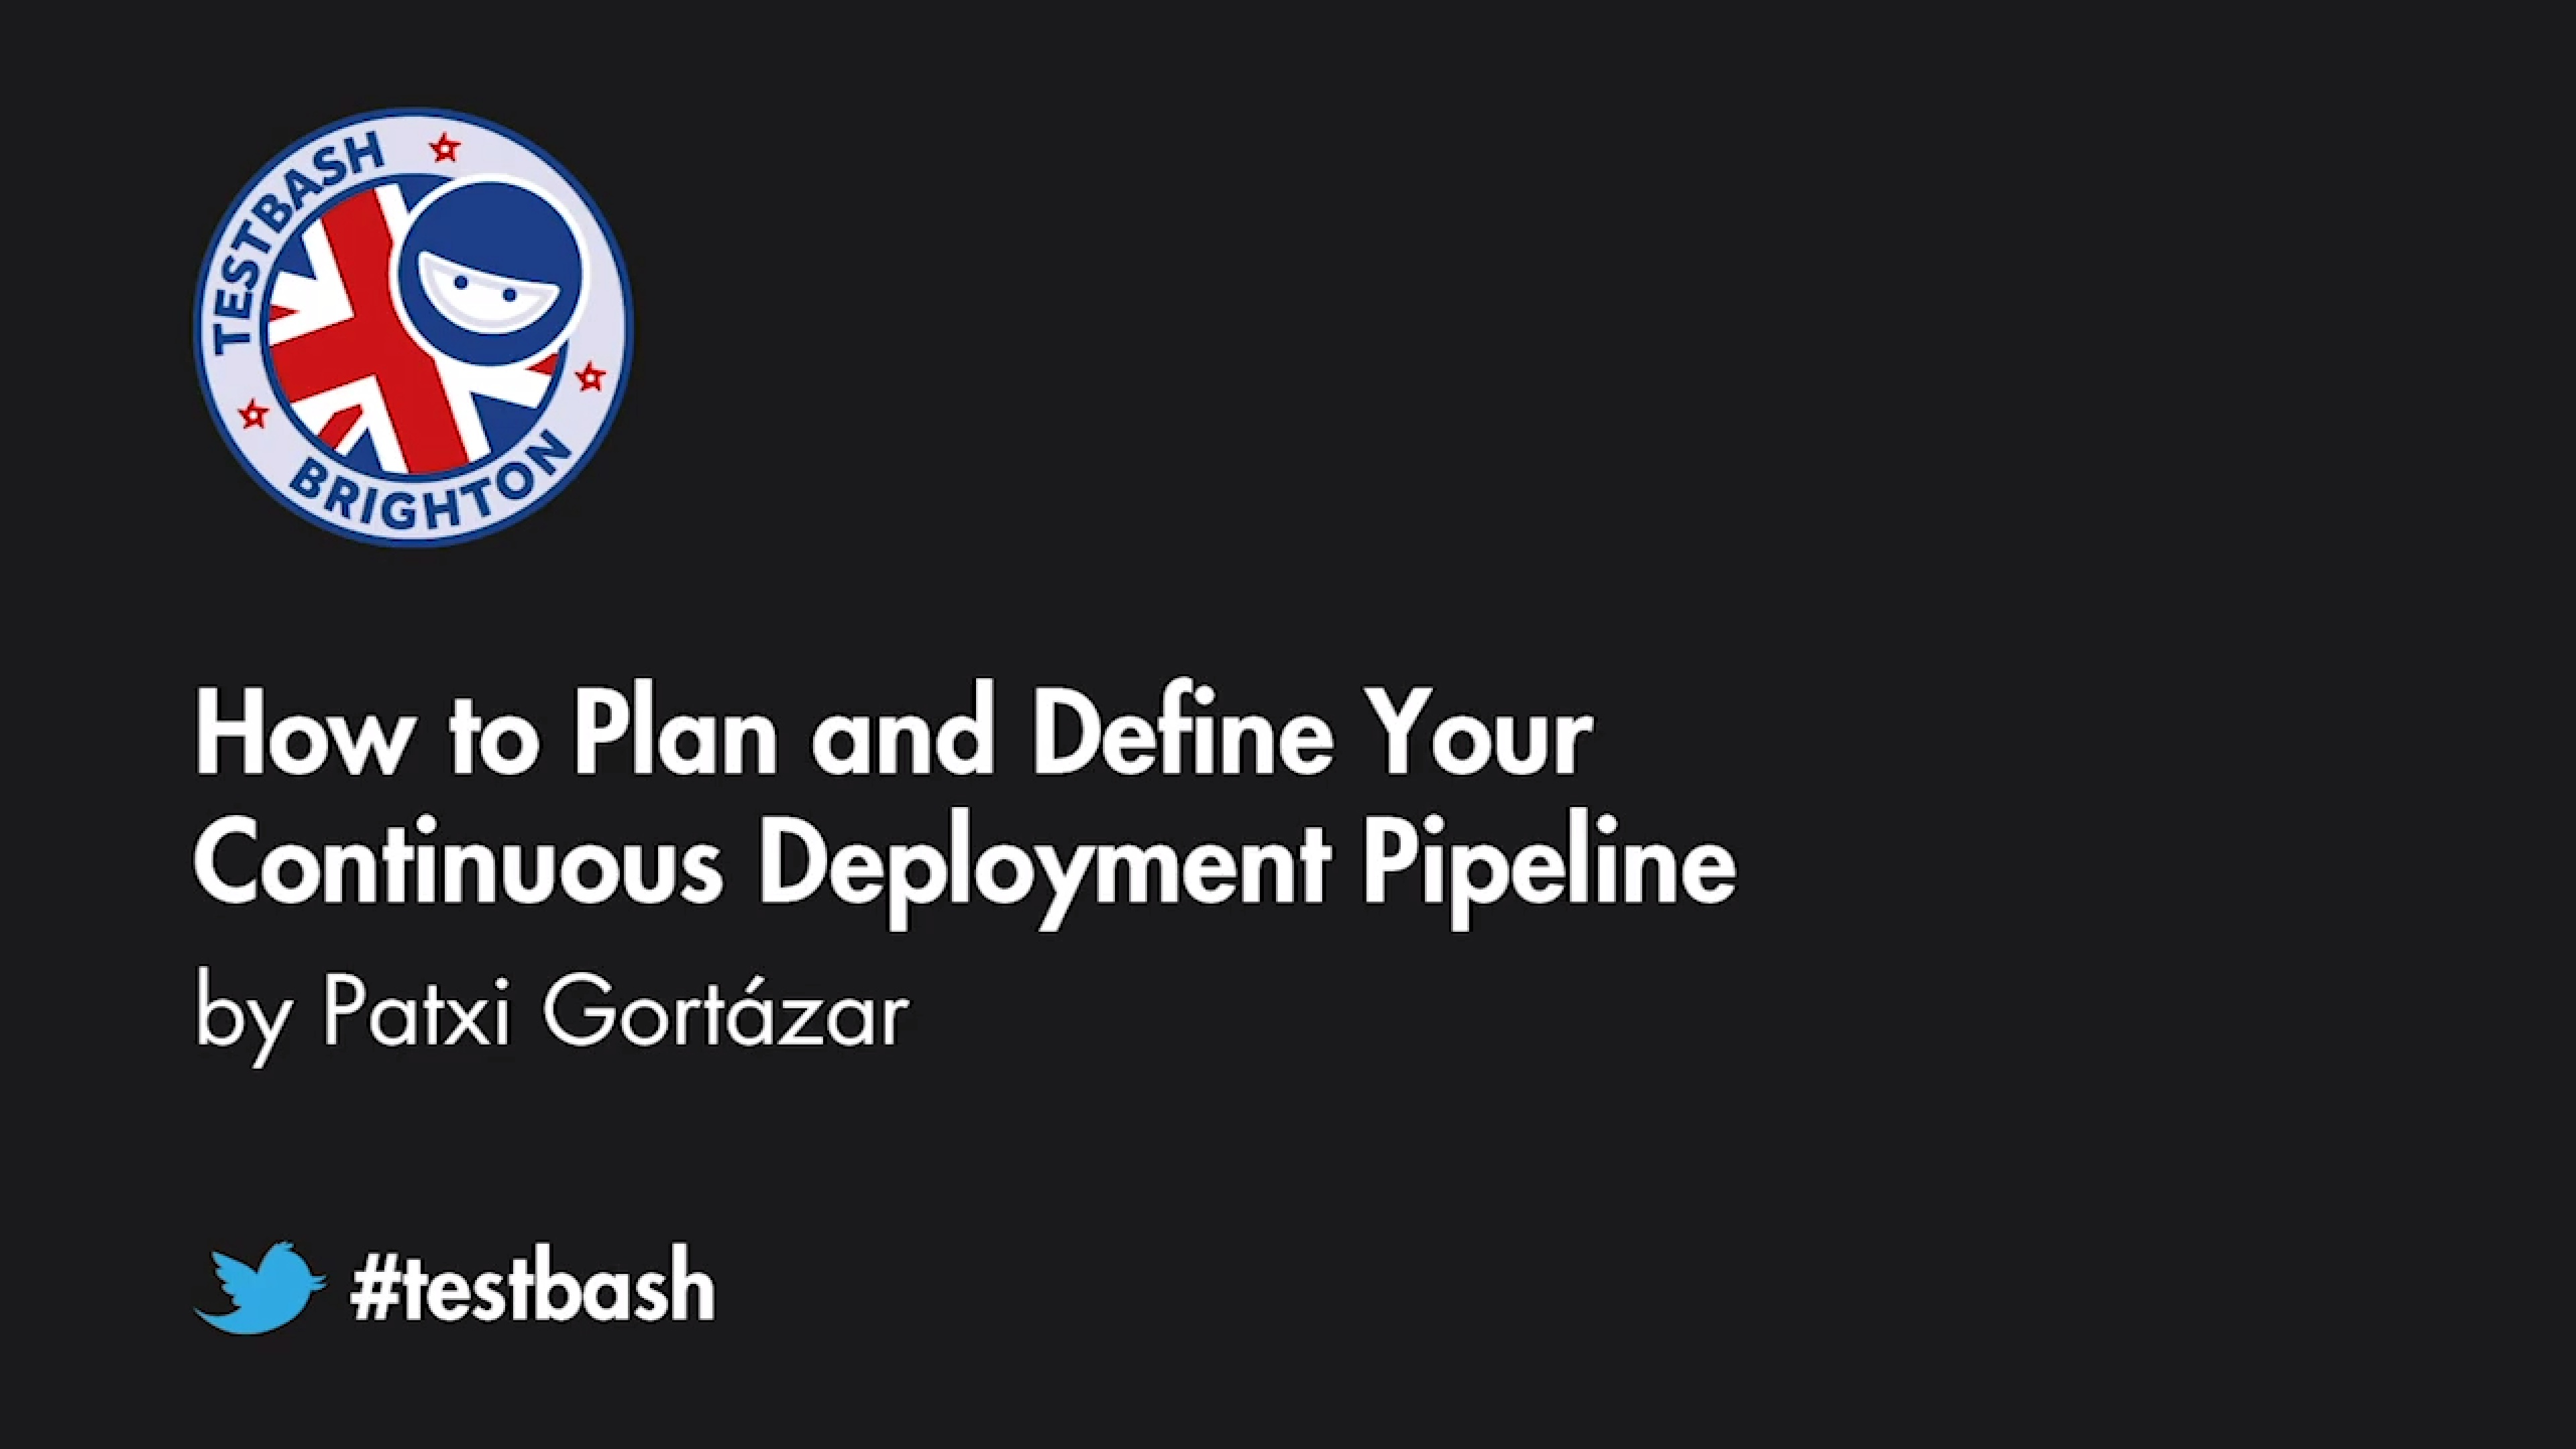 How to Plan and Define Your Continuous Deployment Pipeline - Patxi Gortázar